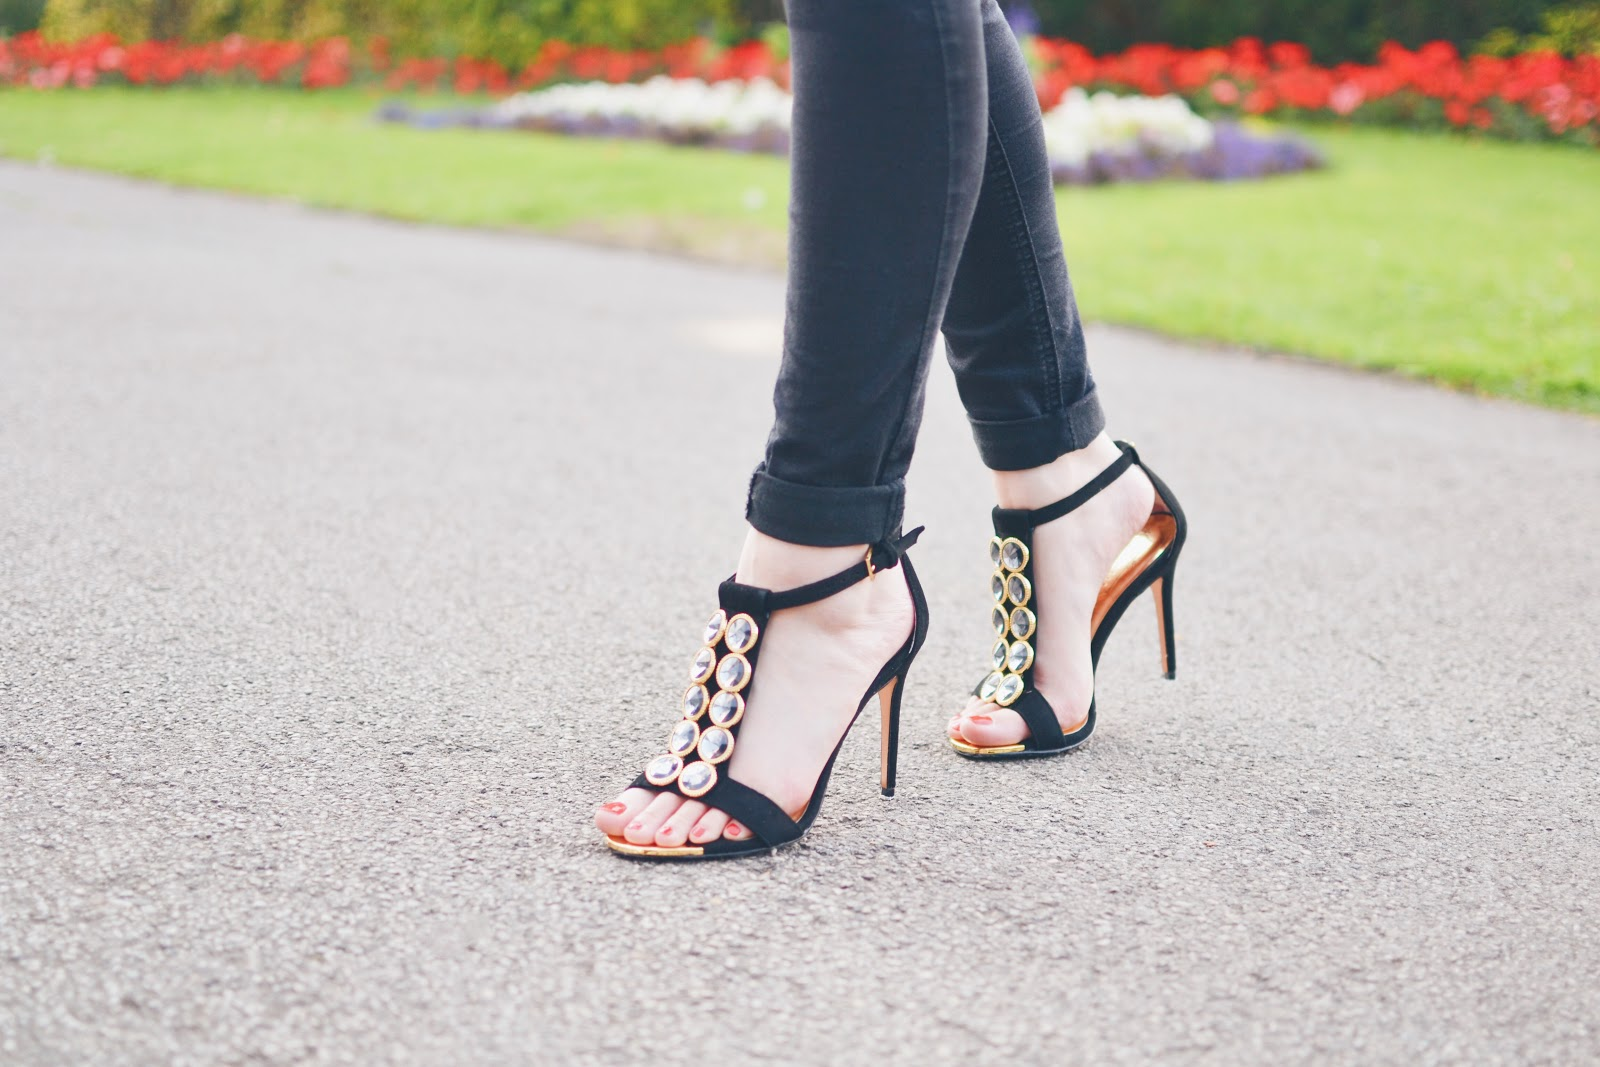 ted baker high heel shoes in black and gold